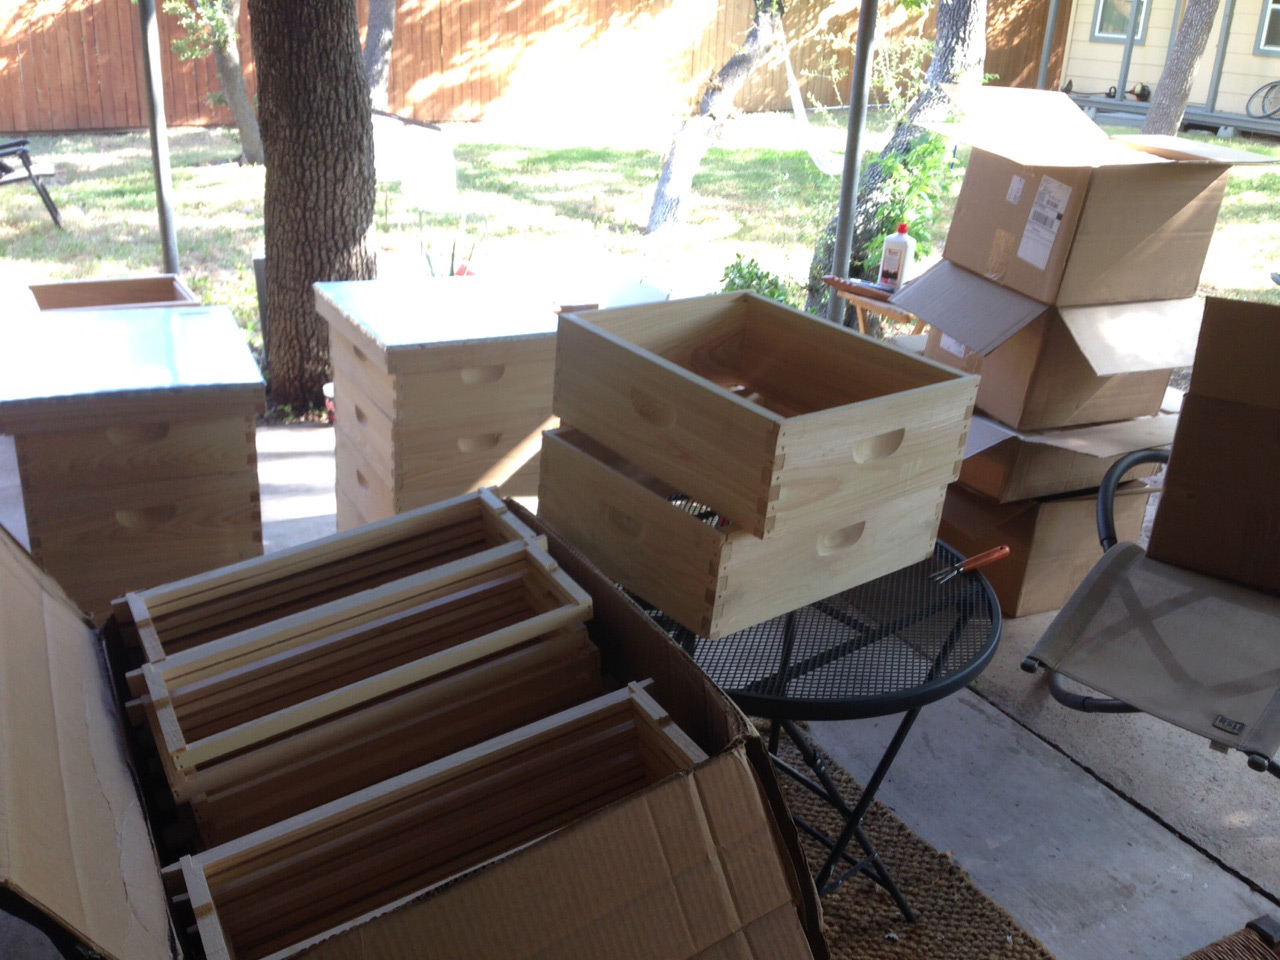 hives-unboxed